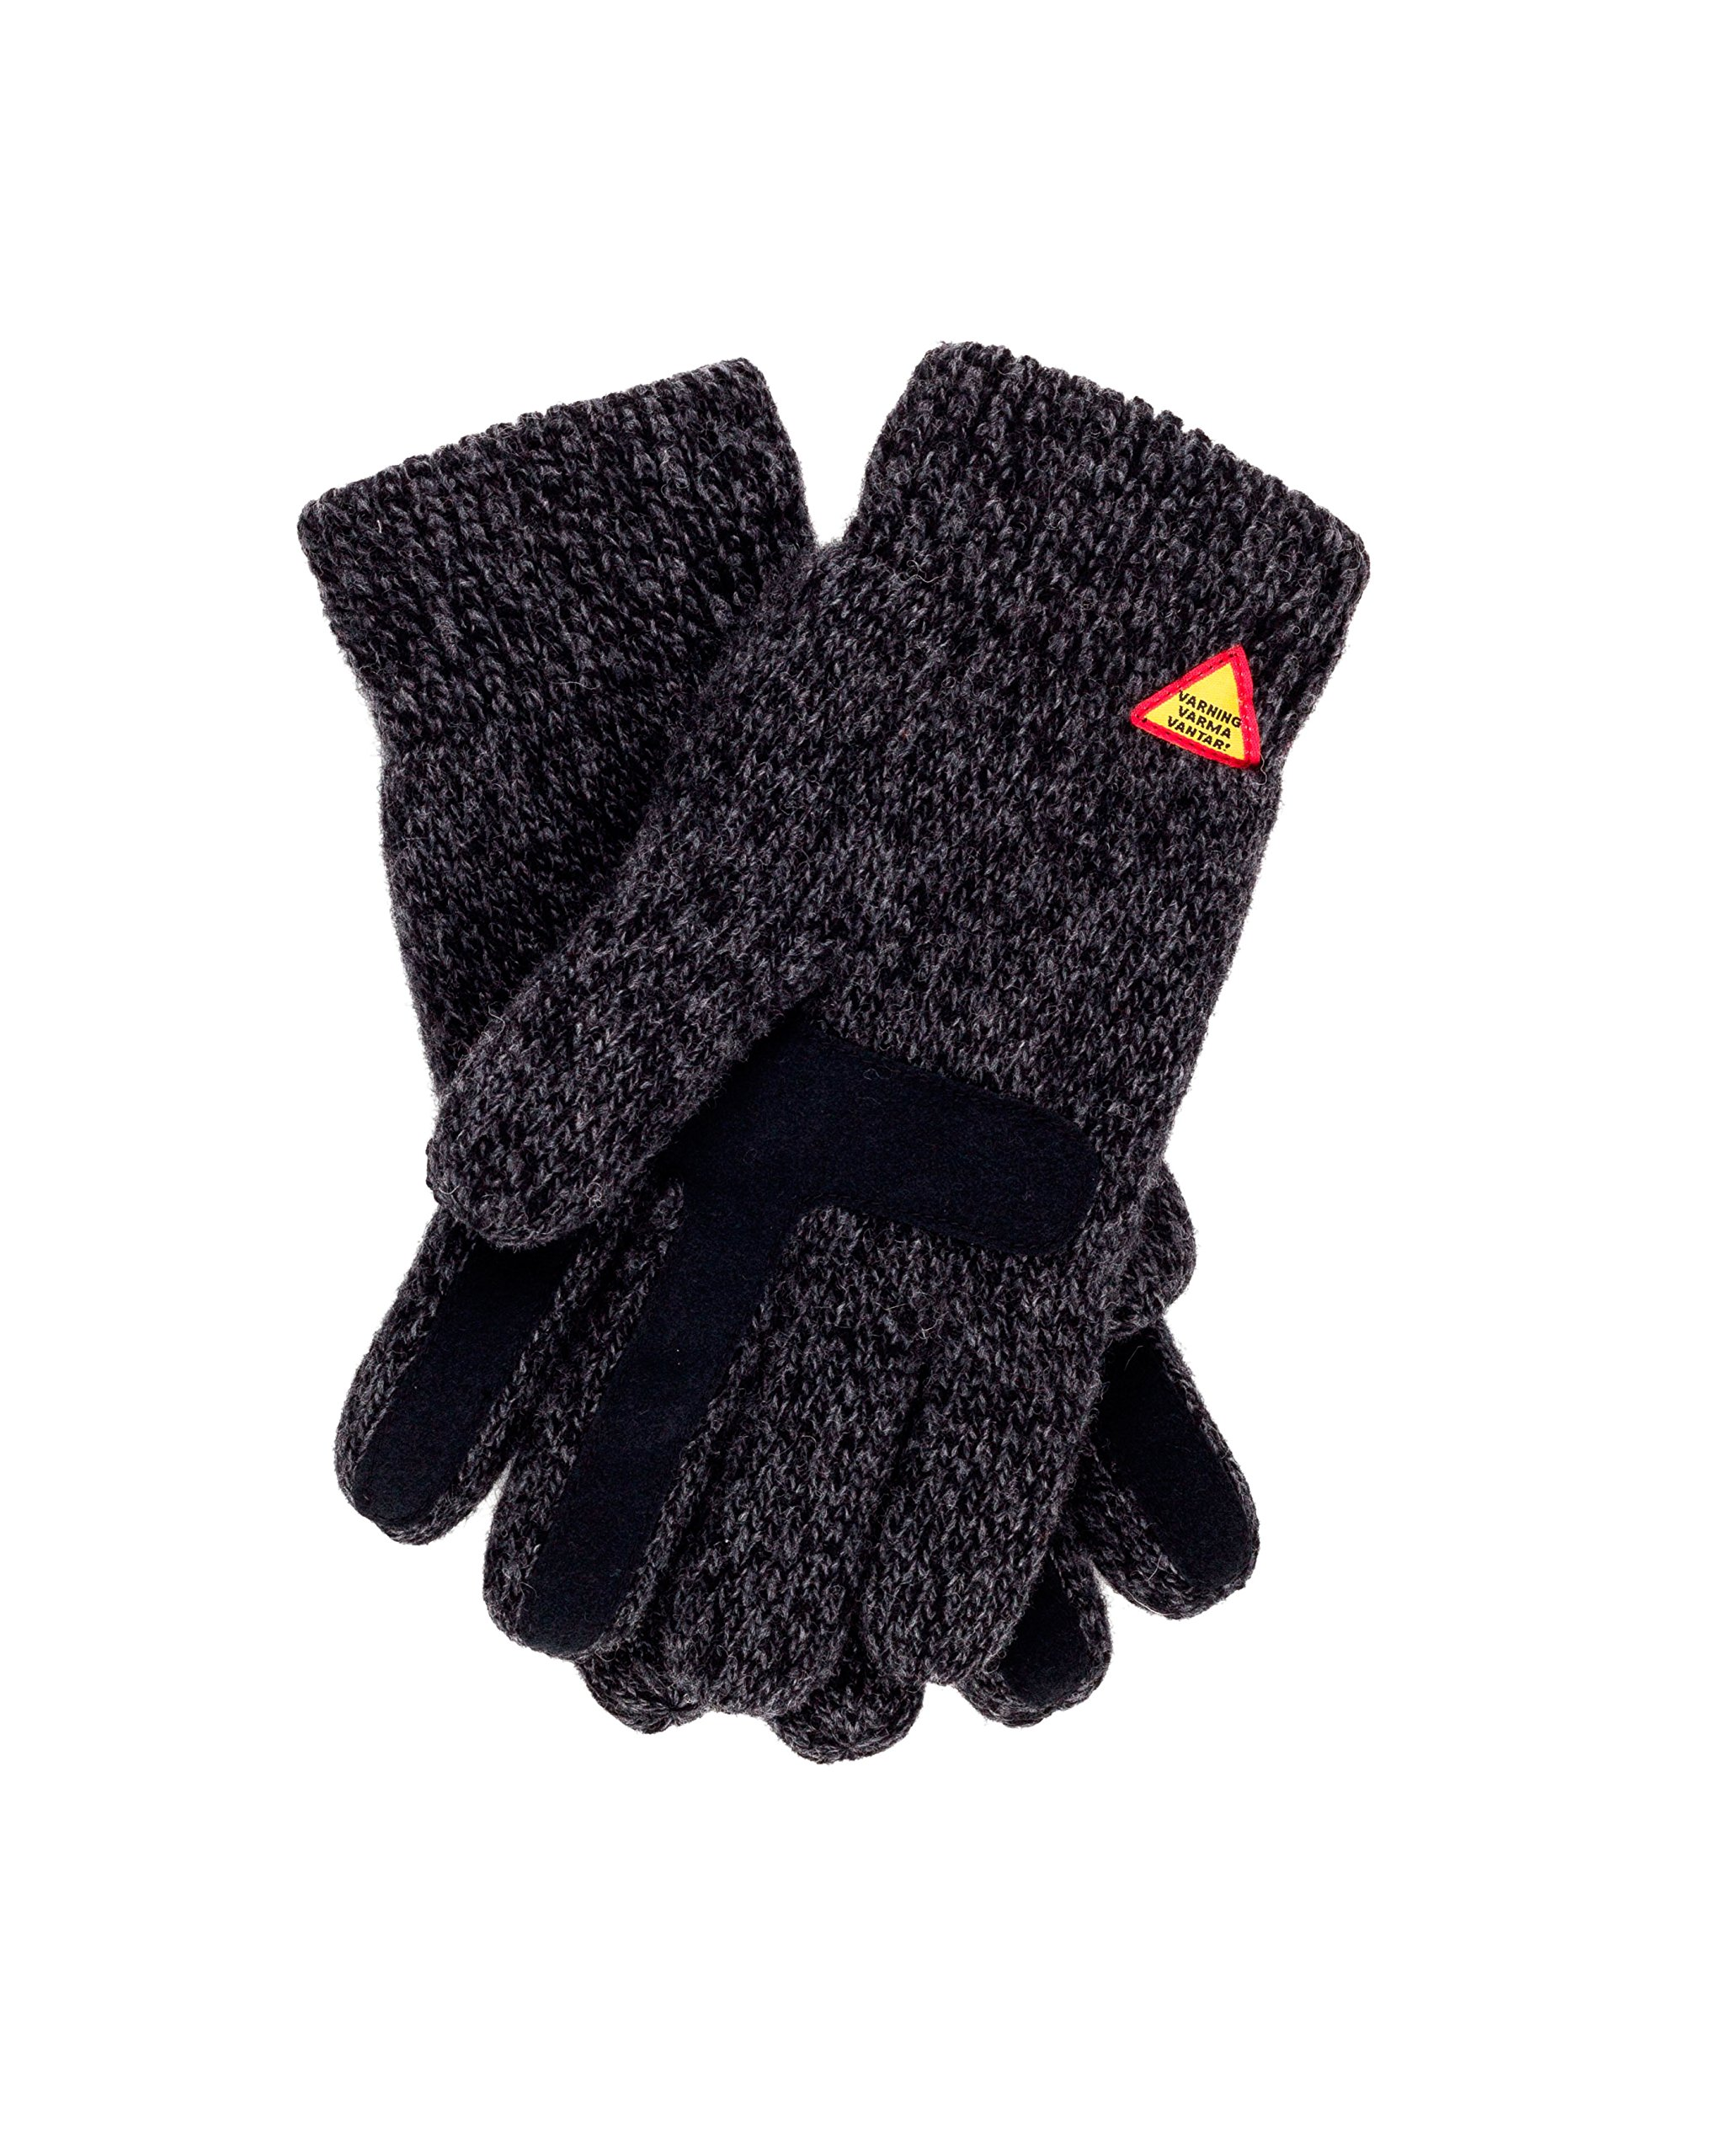 Öjbro Swedish made 100% Merino Wool Soft Thick & Extremely Warm Suede Touch Screen Gloves (as Featured by the Raynauds Assn) (Karg Rörö, Medium) by ÖJBRO VANTFABRIK